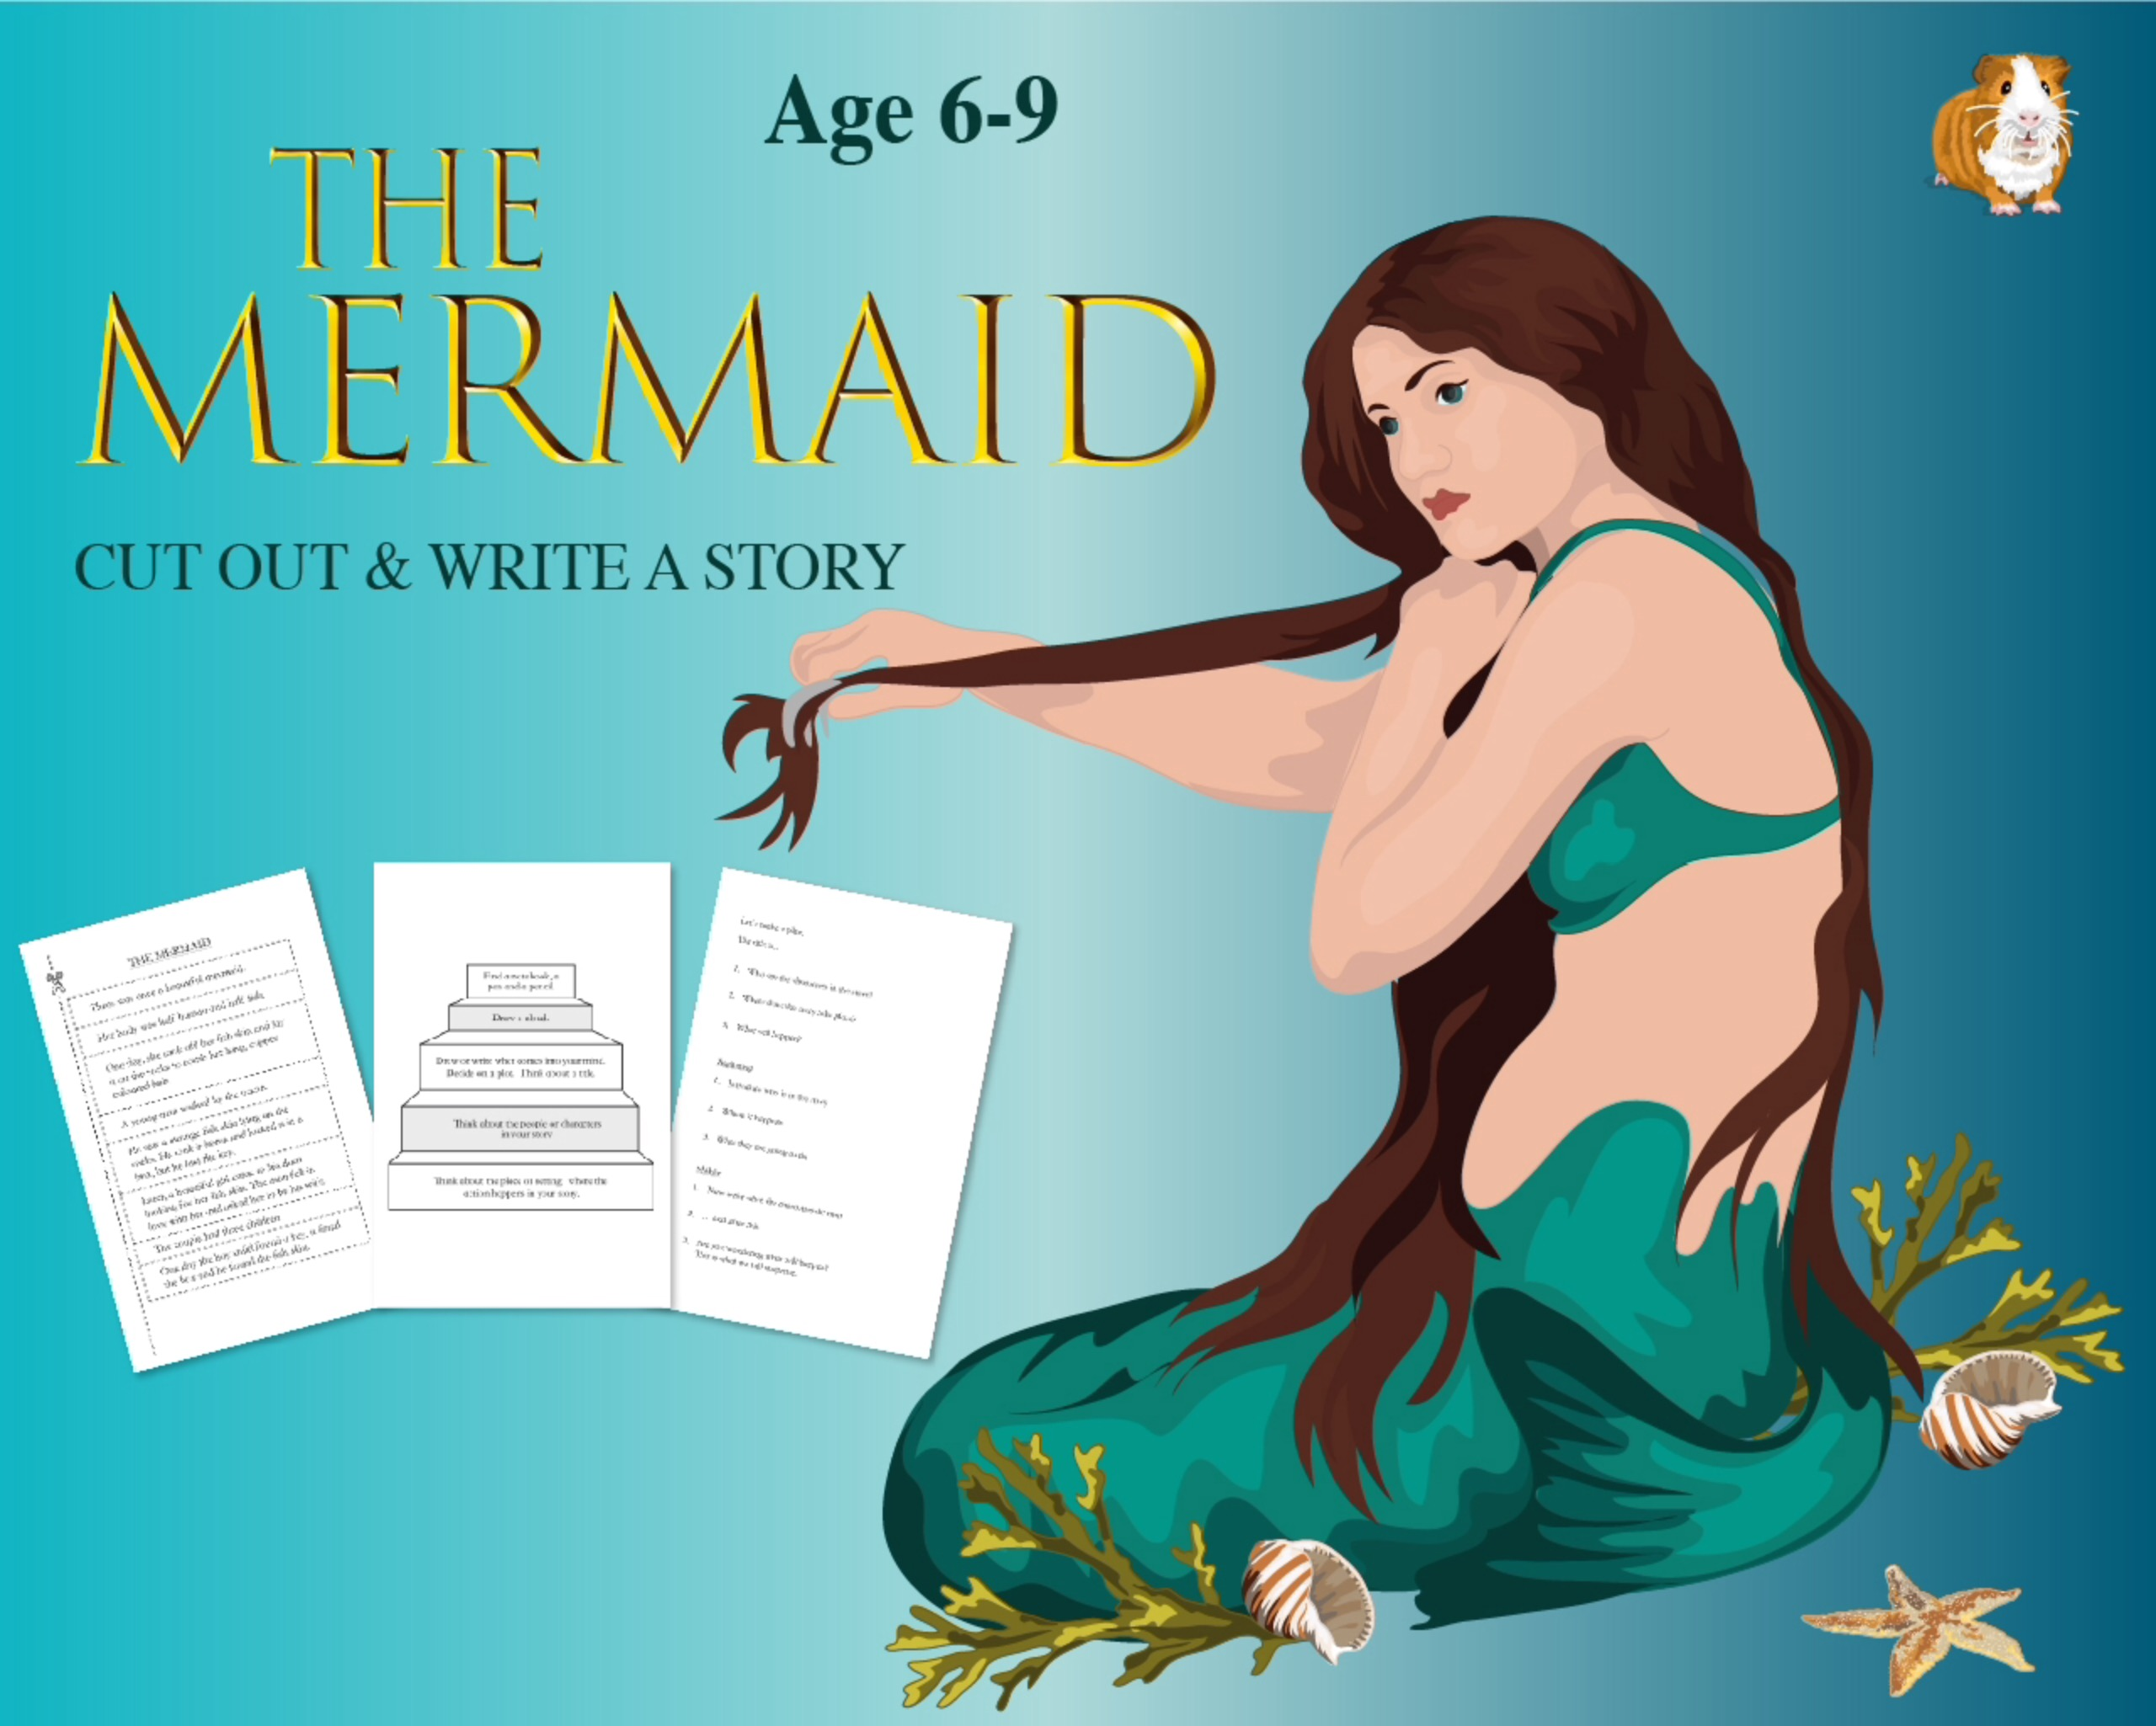 Cut Out And Write The Story Of 'The Mermaid' (6-9 years)